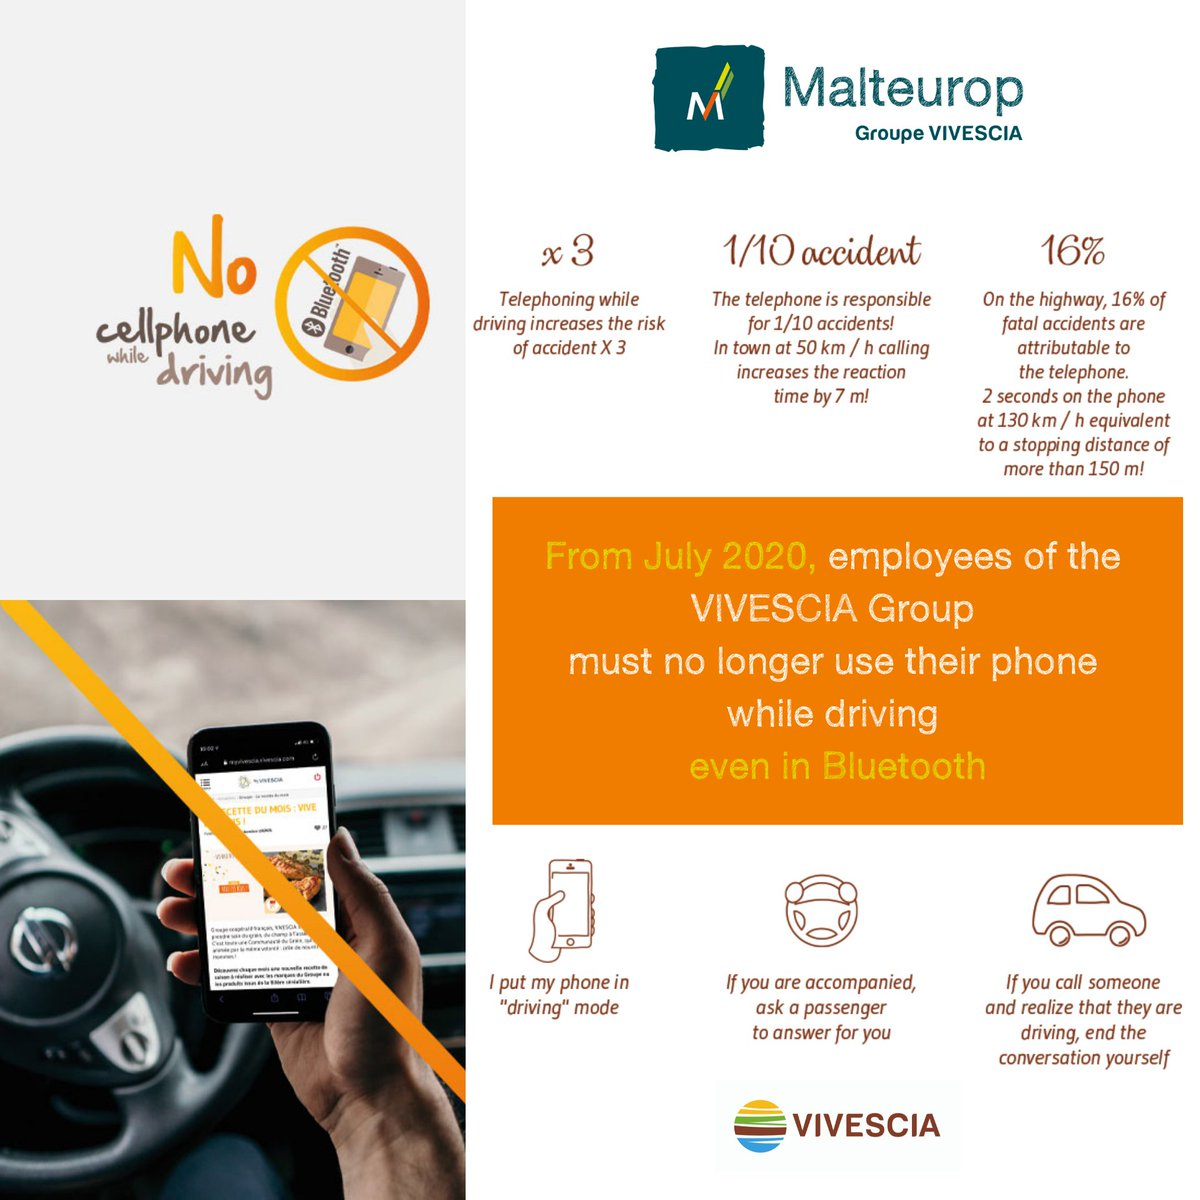 CARE IN MY CAR 🚗  As part of the deployment of group @Vivescia  #CARE approach to road risk, a new #safety rule will be integrated by all employees all around the world 🌎 👷🏼♀️ https://t.co/ECstgg56py